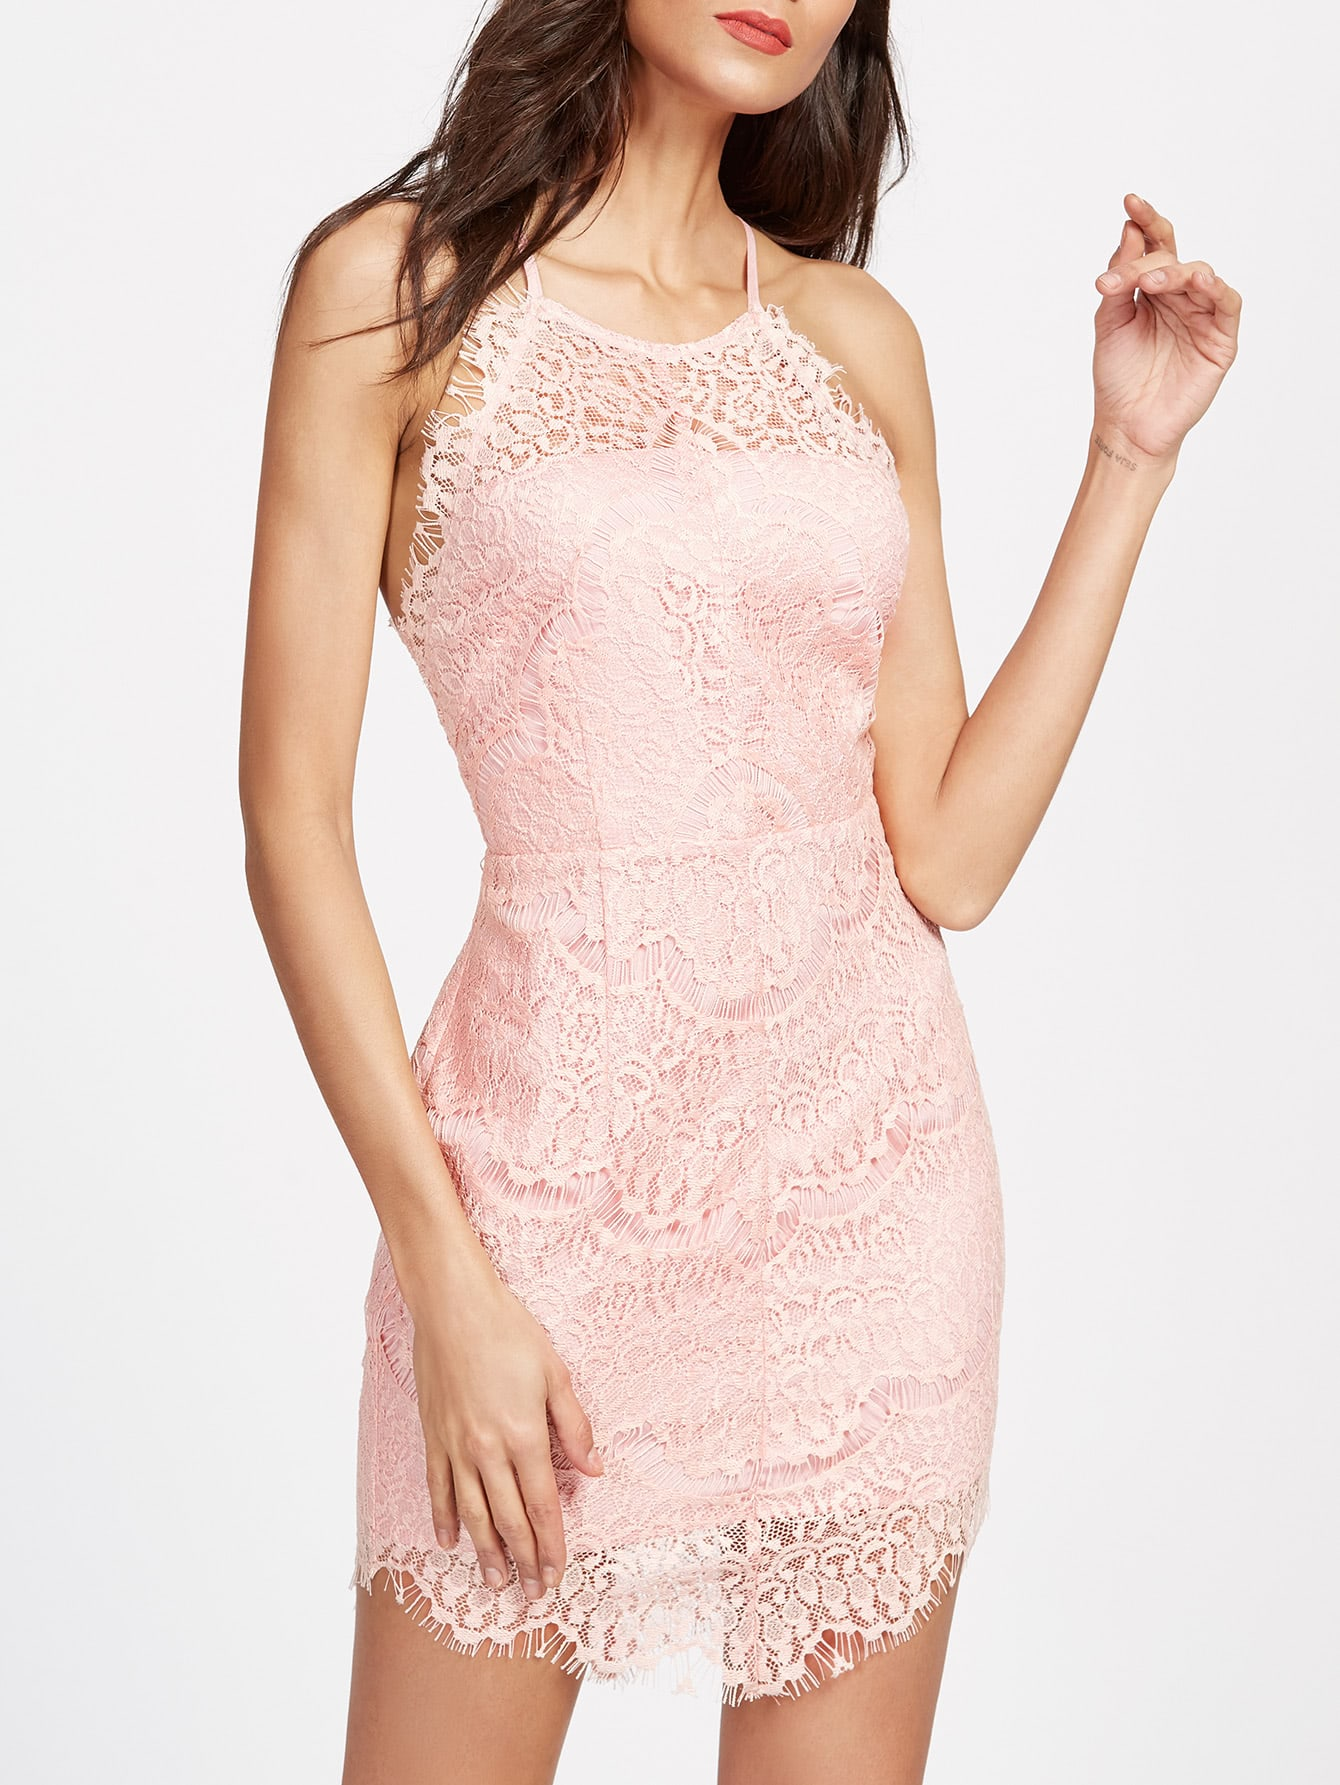 Button Back Floral Lace Overlay Cami Dress dress170313711